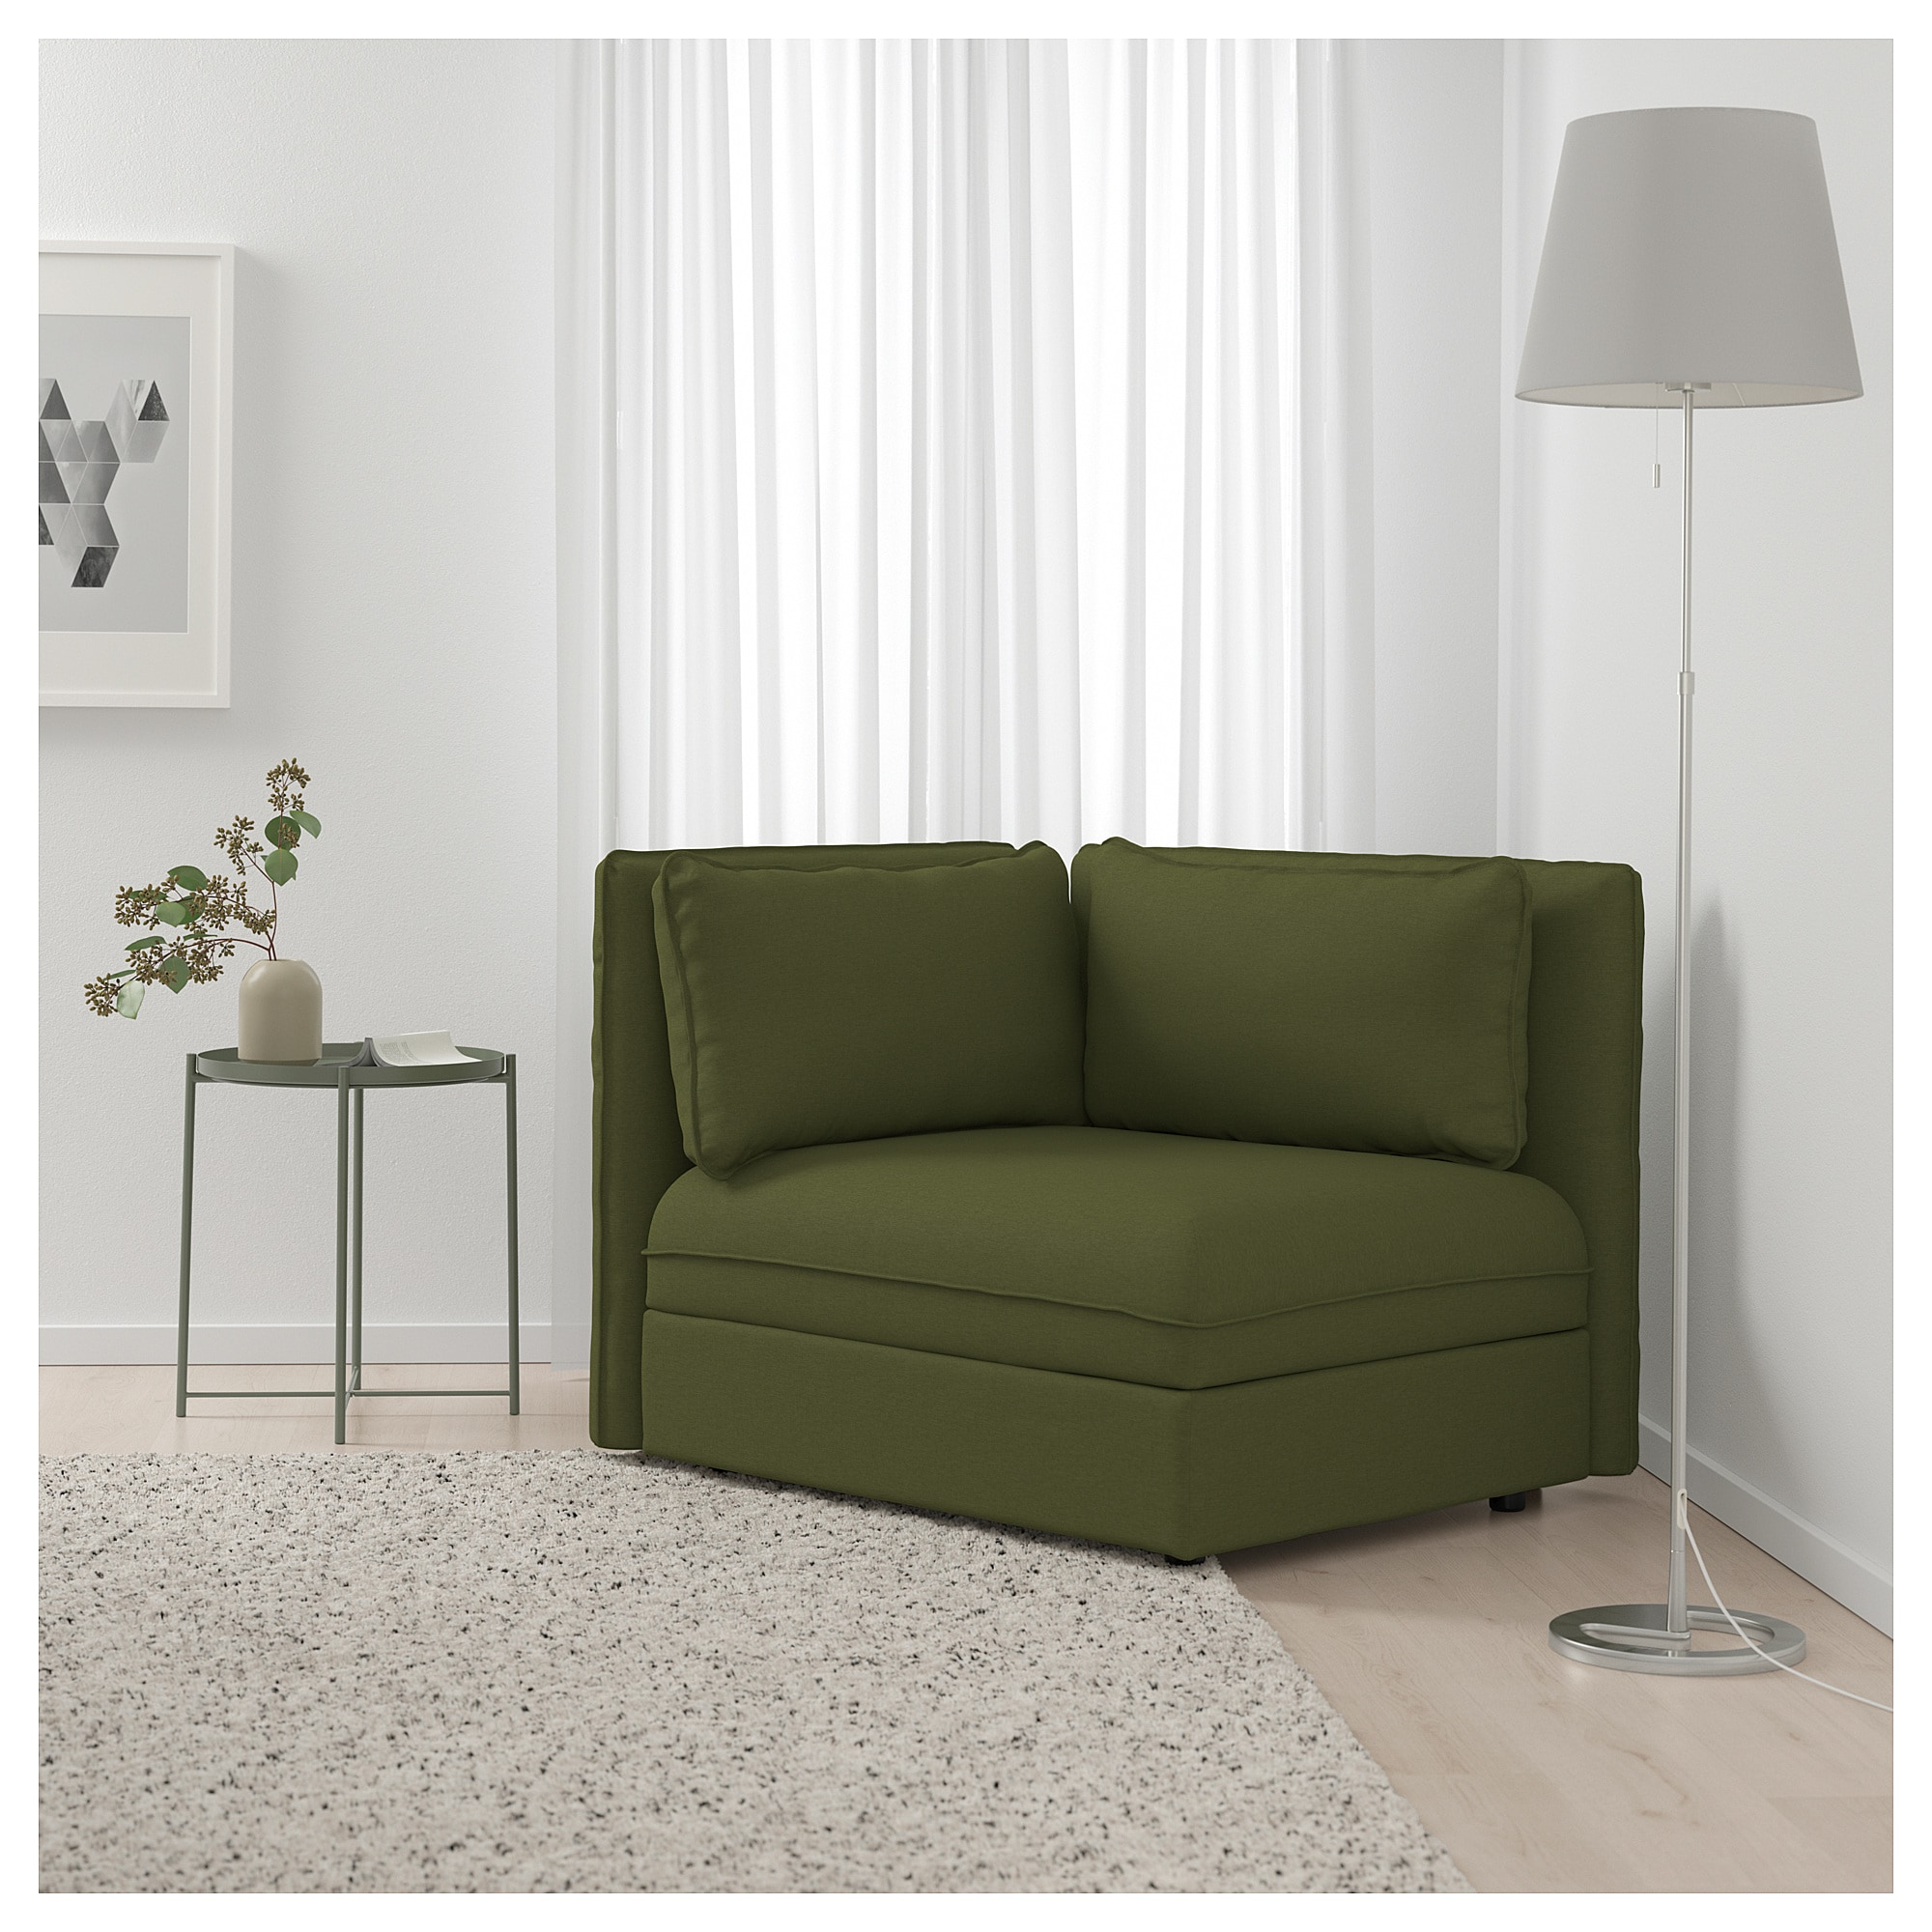 Astounding Ikea Vallentuna Sectional 1 Seat Orrsta Olive Green In Lamtechconsult Wood Chair Design Ideas Lamtechconsultcom